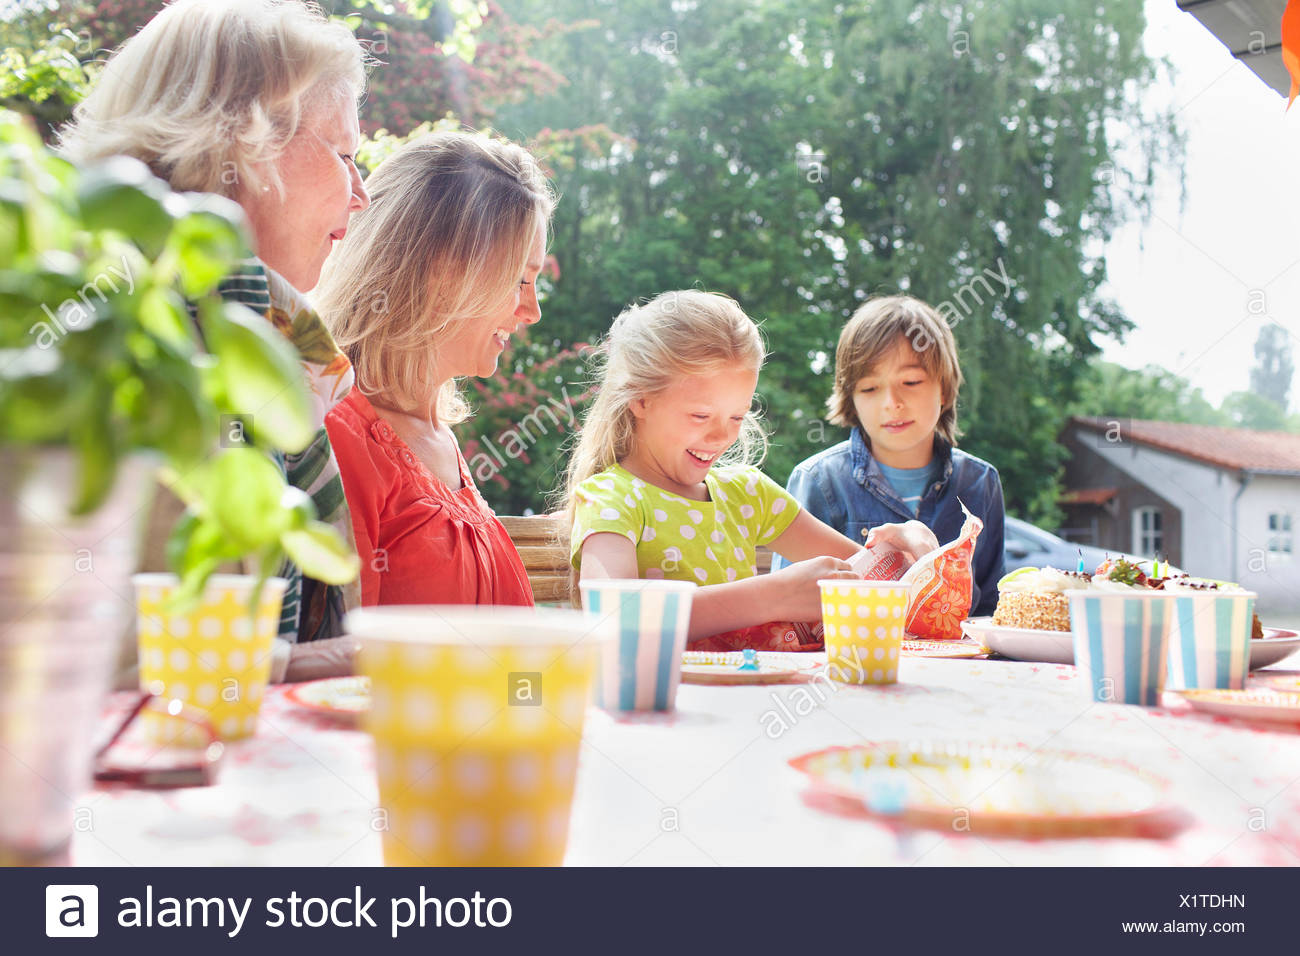 Girl opening birthday gift with her family at birthday party - Stock Image